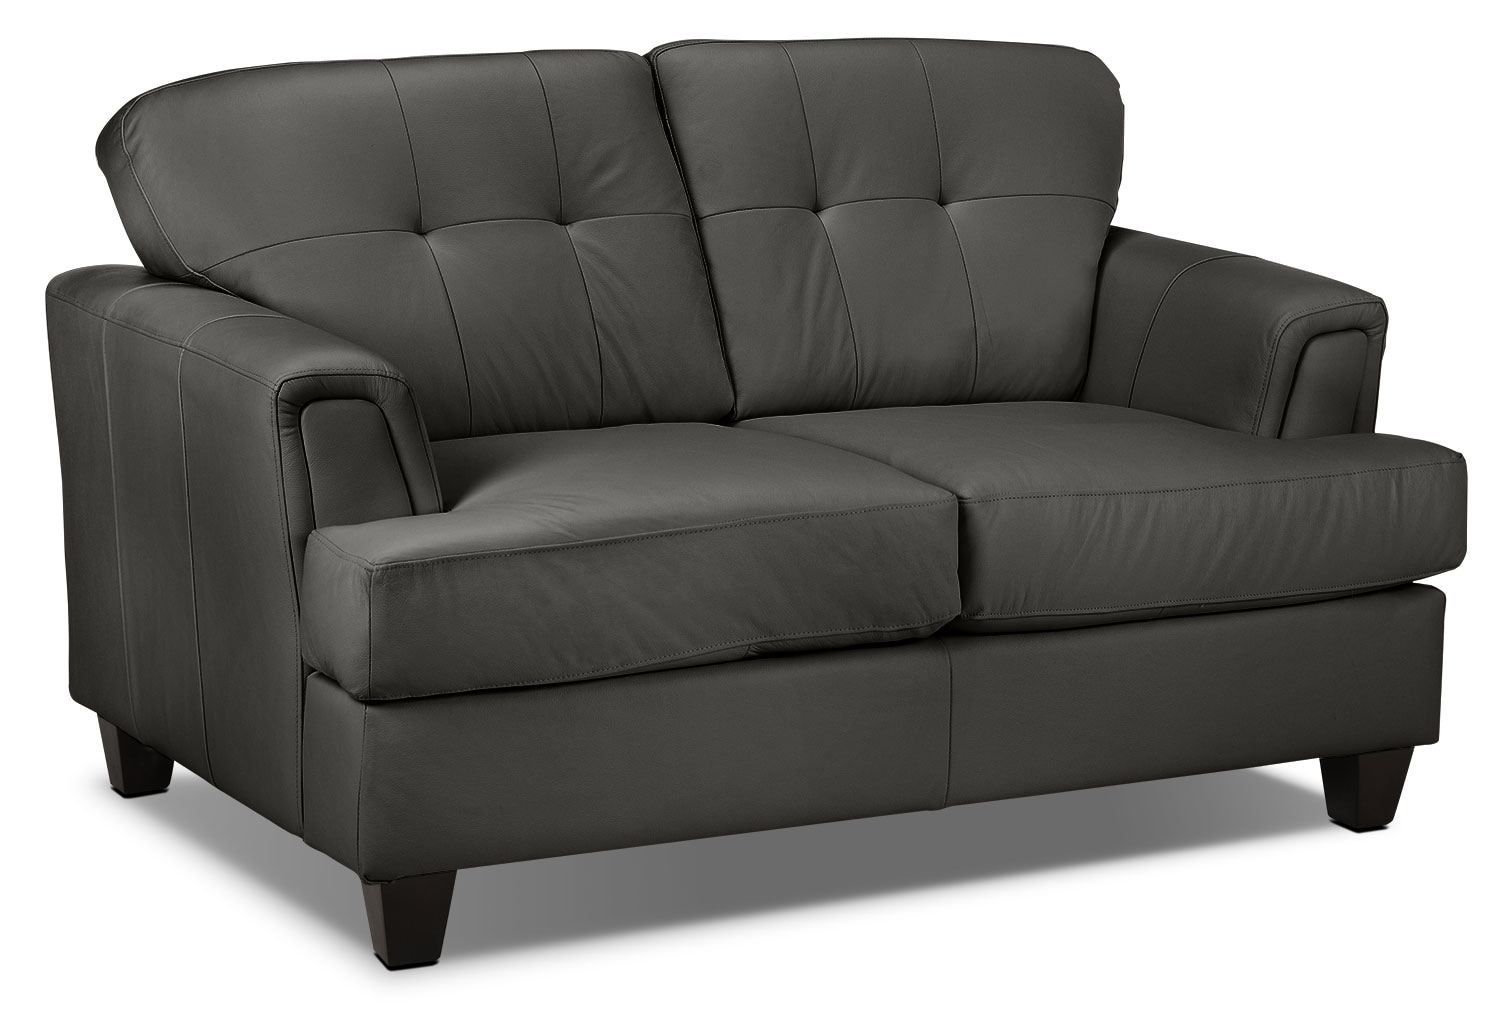 Spencer Loveseat - Smoke Grey